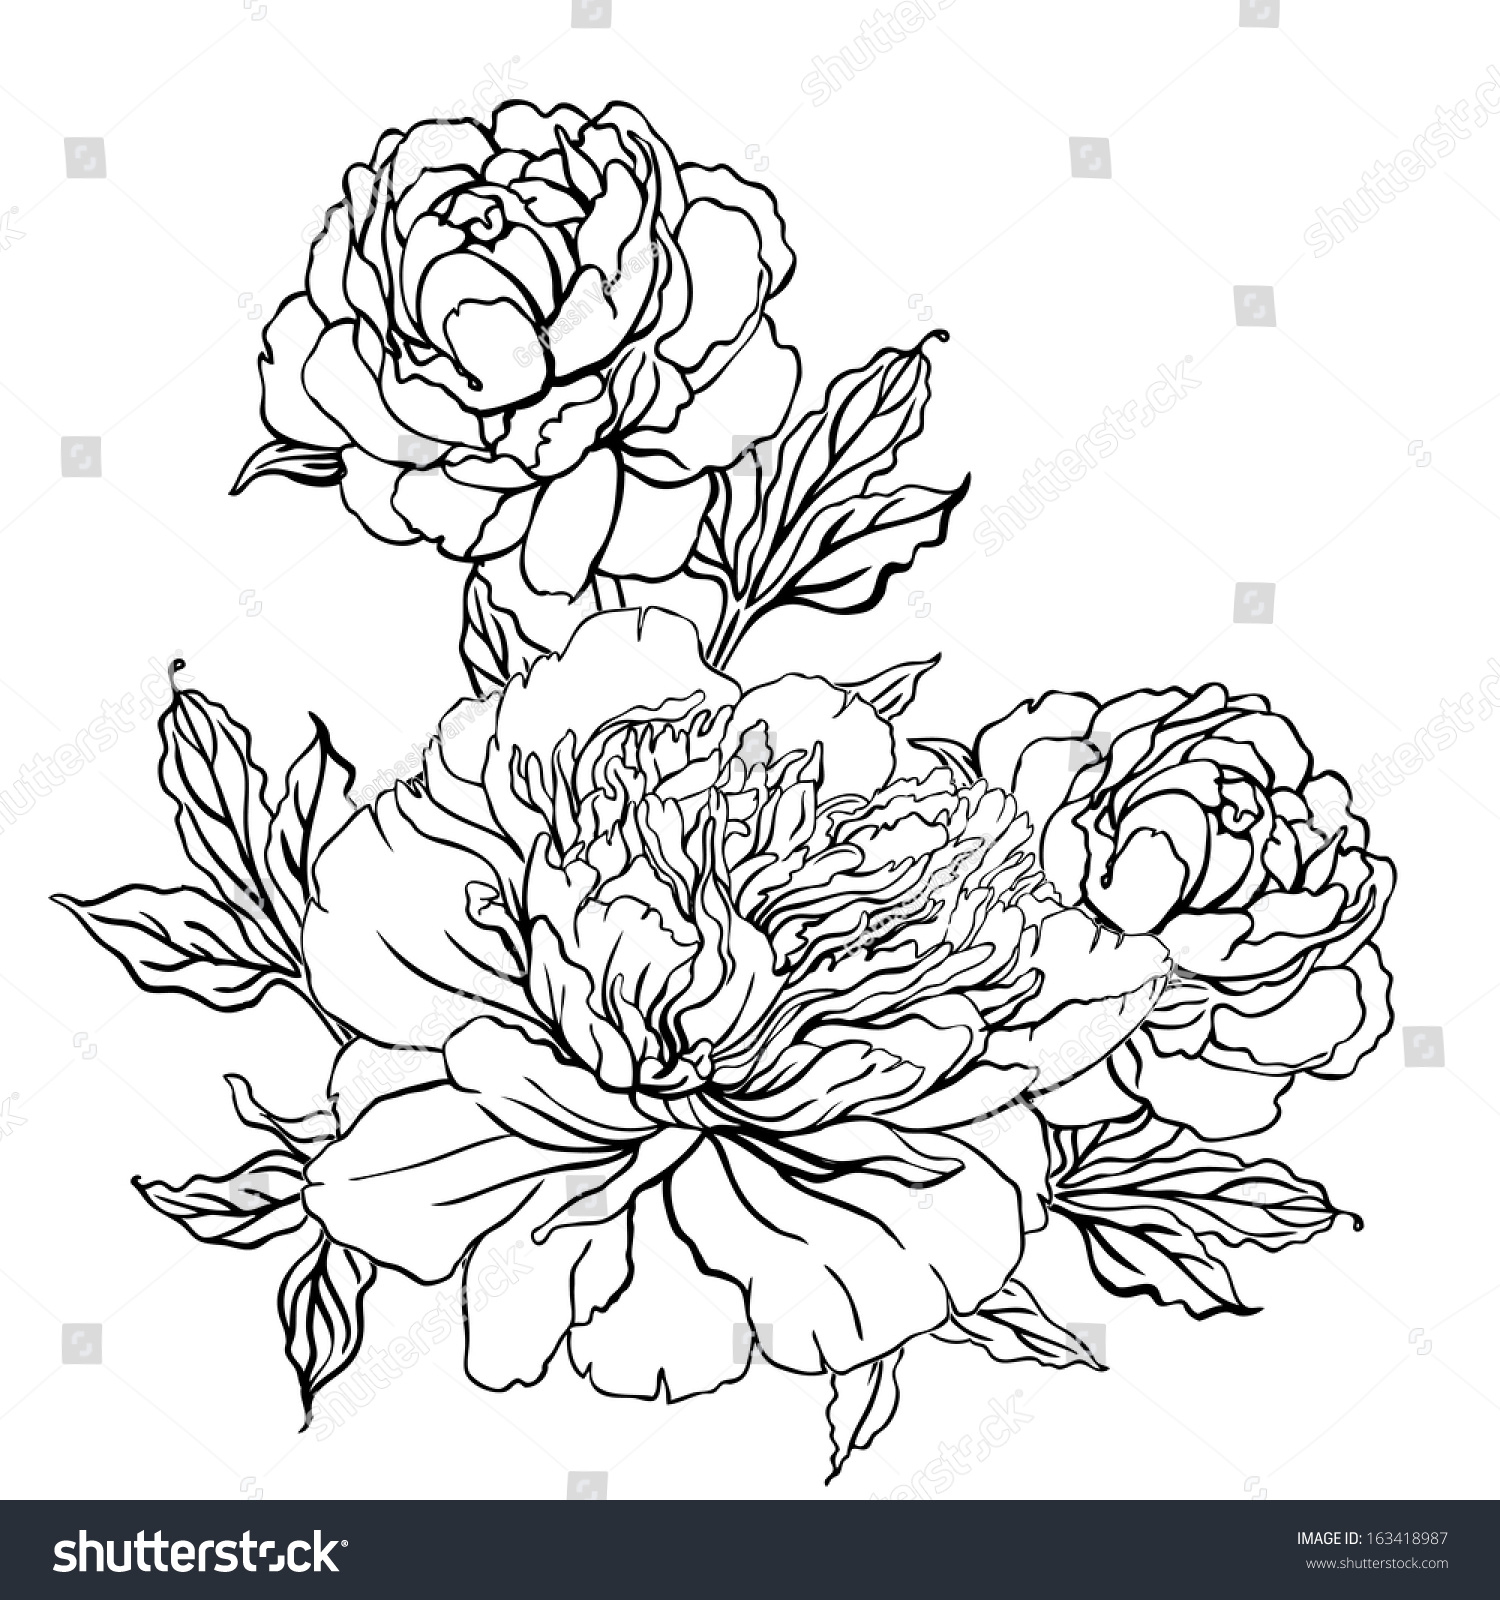 Peony flower isolated on white stock vector 368014568 shutterstock - Peony Vintage Hand Drawing Background With Flowers Vector Illustration Isolated On White Stock Vector